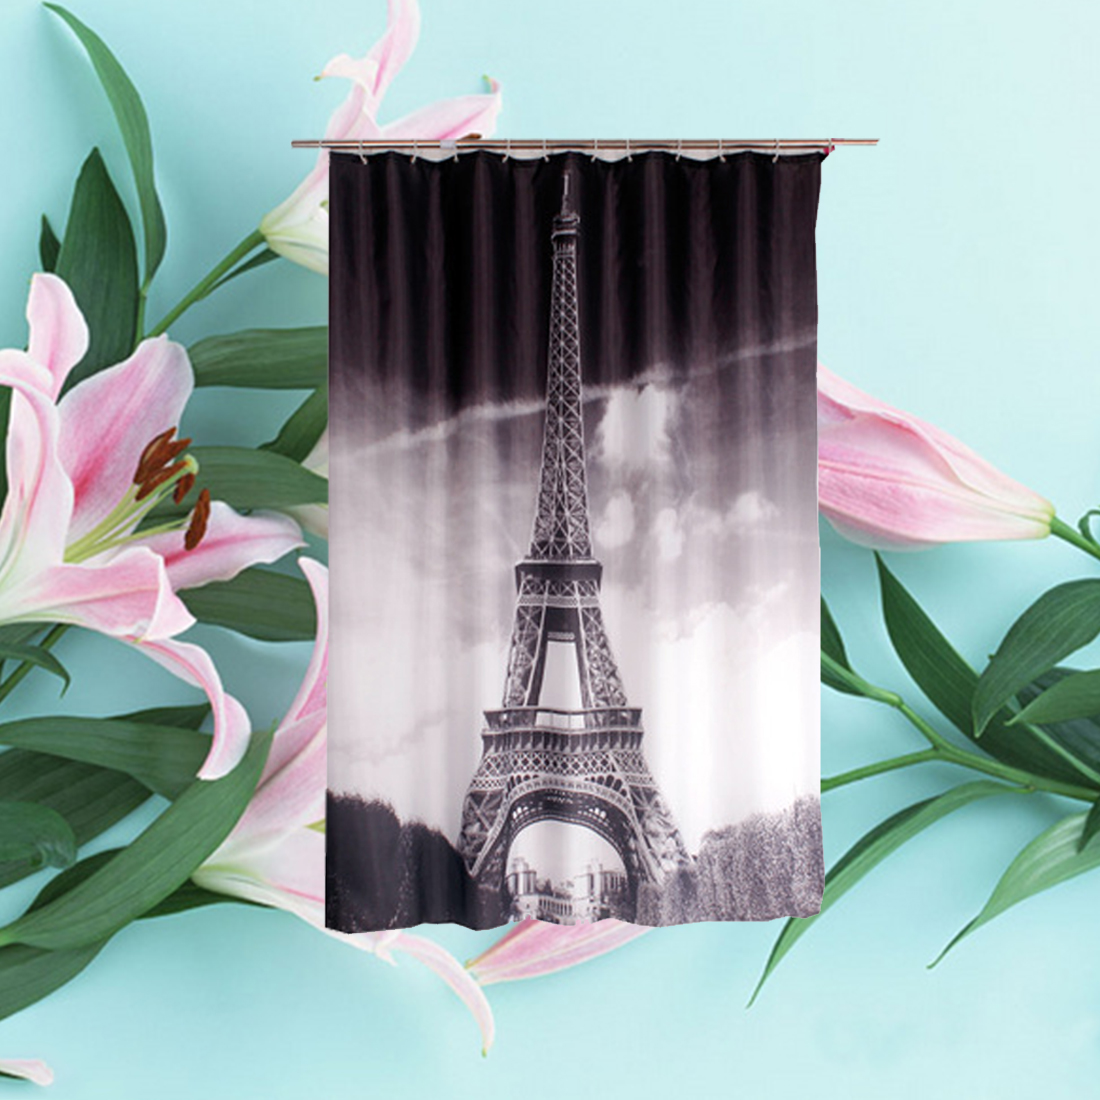 Fabric paris shower curtain - New Paris Shower Curtains Design Water Resistance Fabric Polyester Waterproof Home Bathroom Curtains 180 180cm